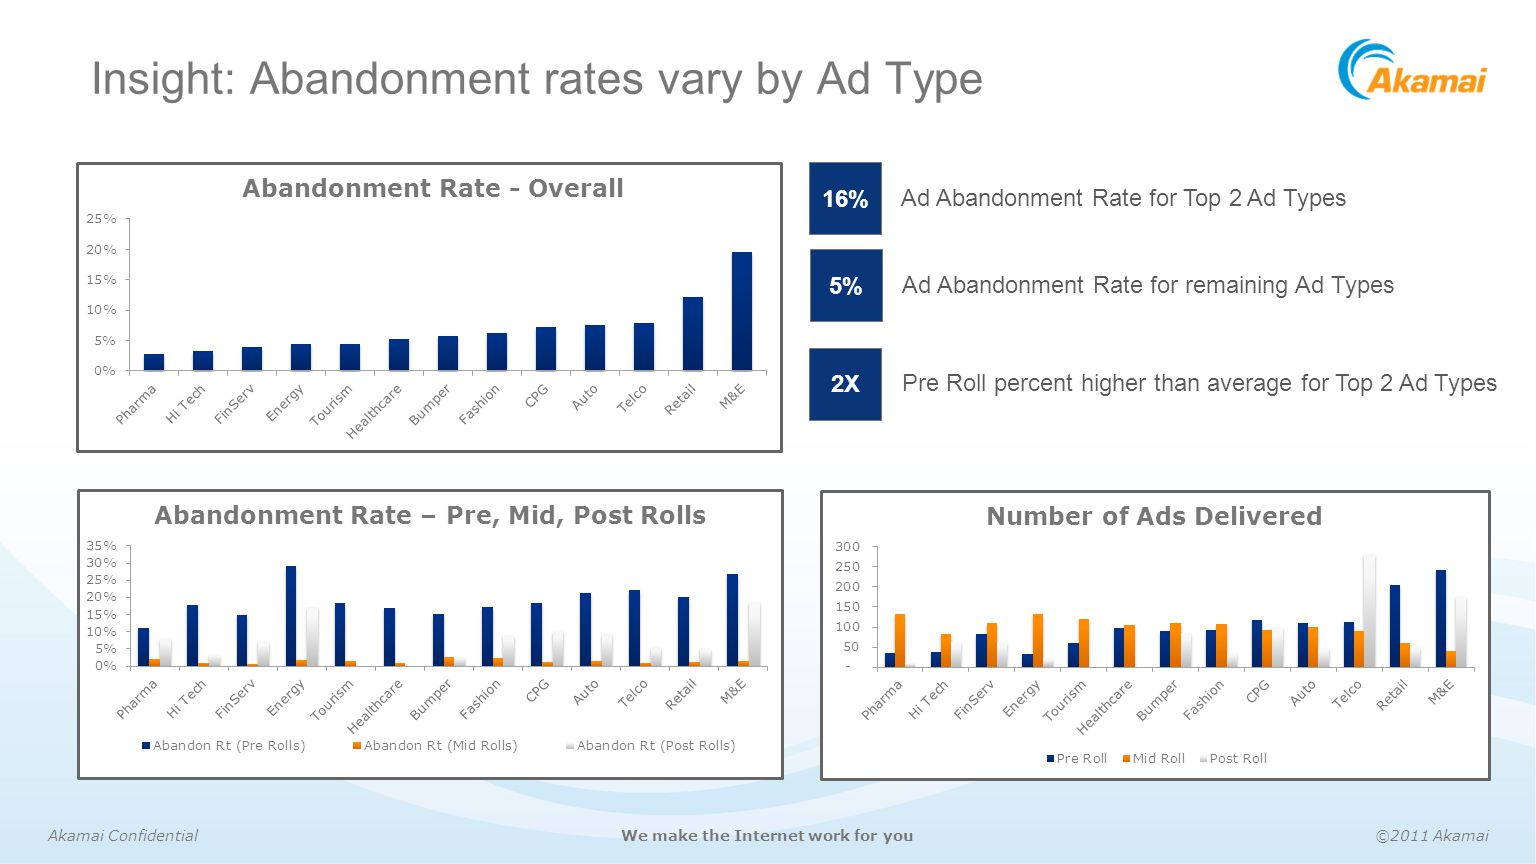 Insight: Abandonment rates vary by Ad Type